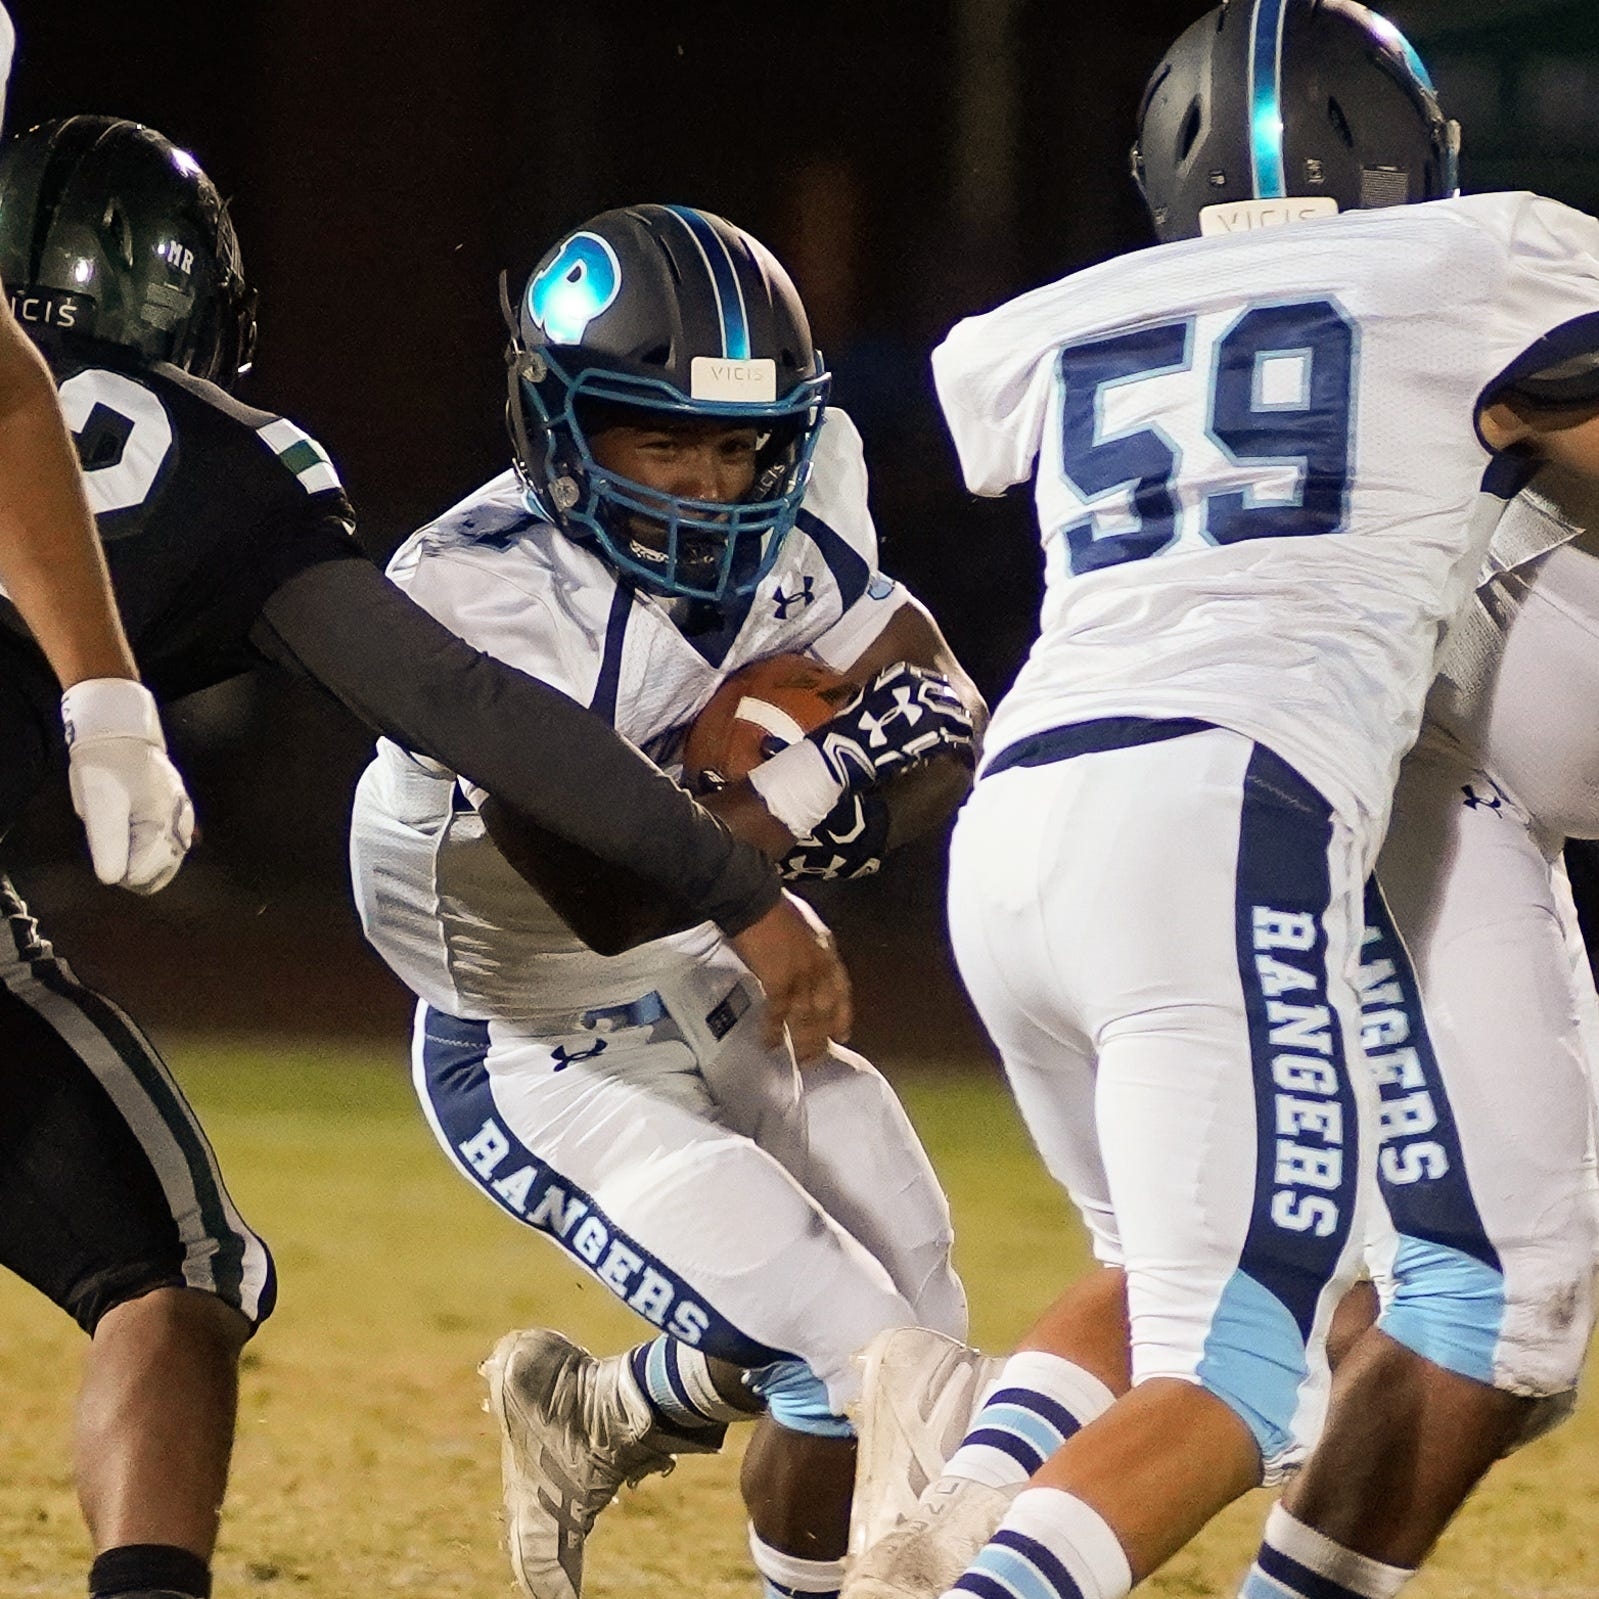 El Diamante entered Friday night with a seven-game winning streak vs. Redwood. Find out who won.